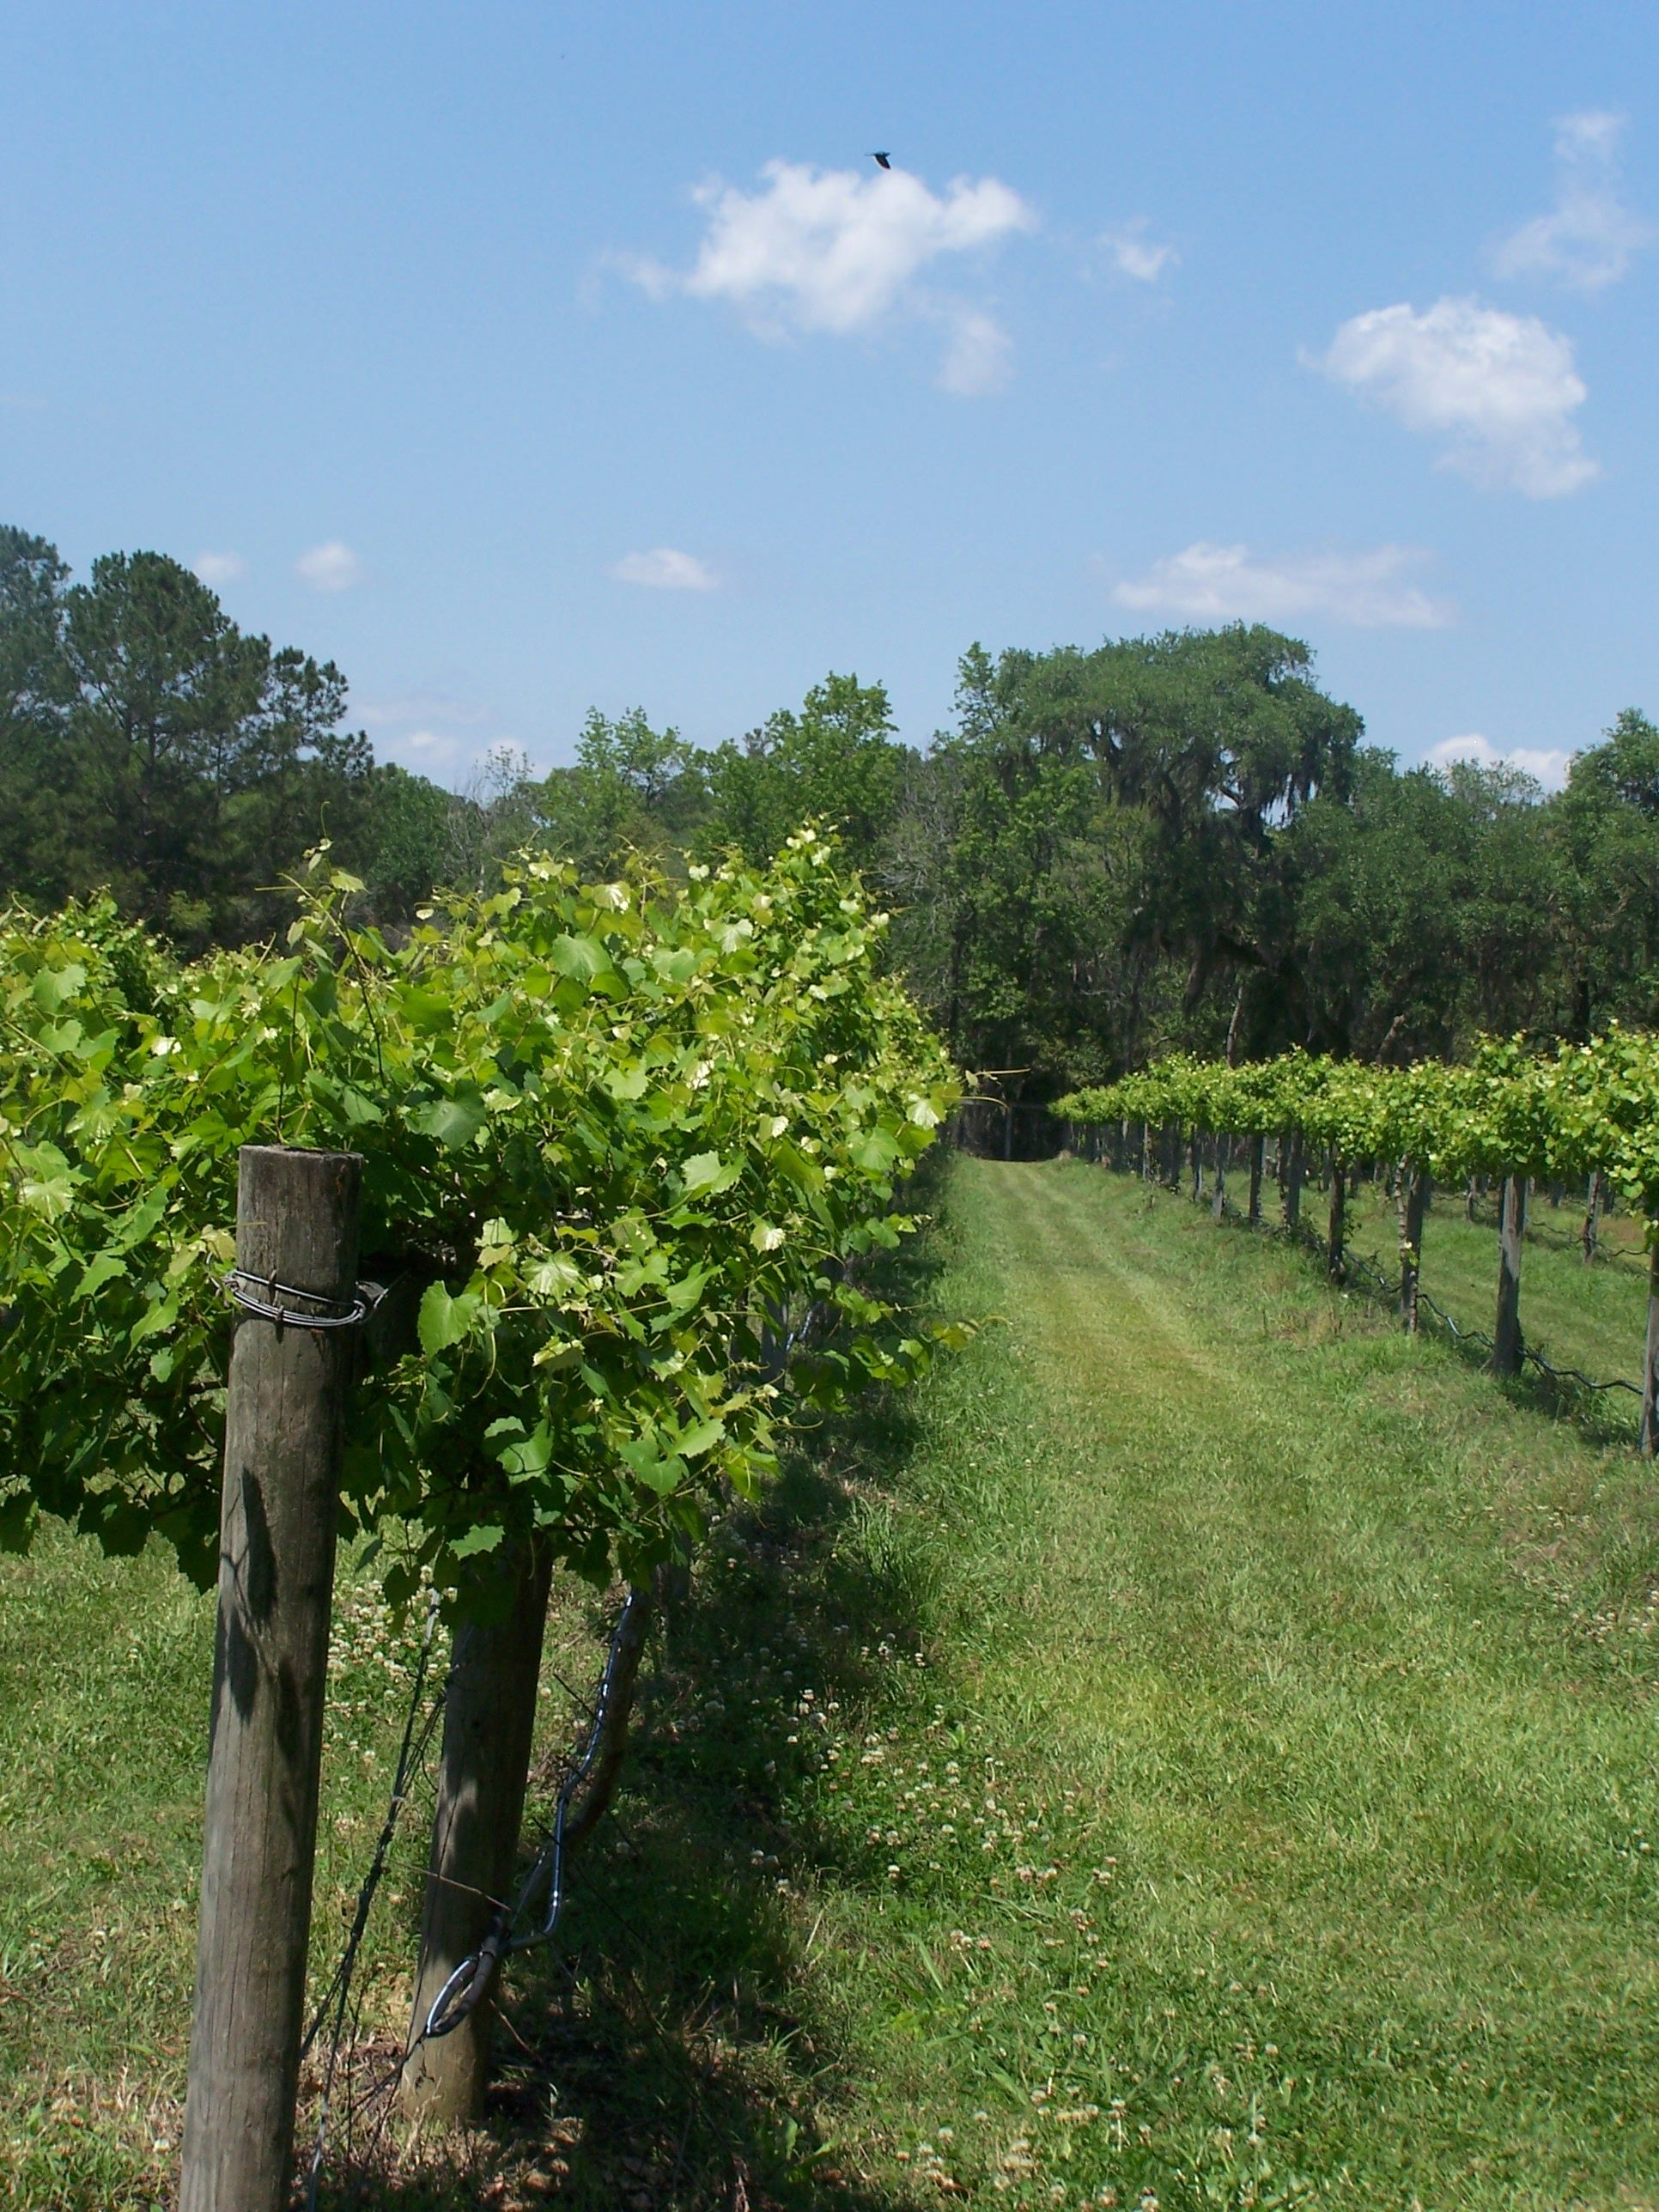 Irvin House Vineyards On Wadmalaw Island Just South Of Charleston Sc Their Tasting Tour Is Not To Be Missed South Carolina Vacation Wine Tour Places To Go